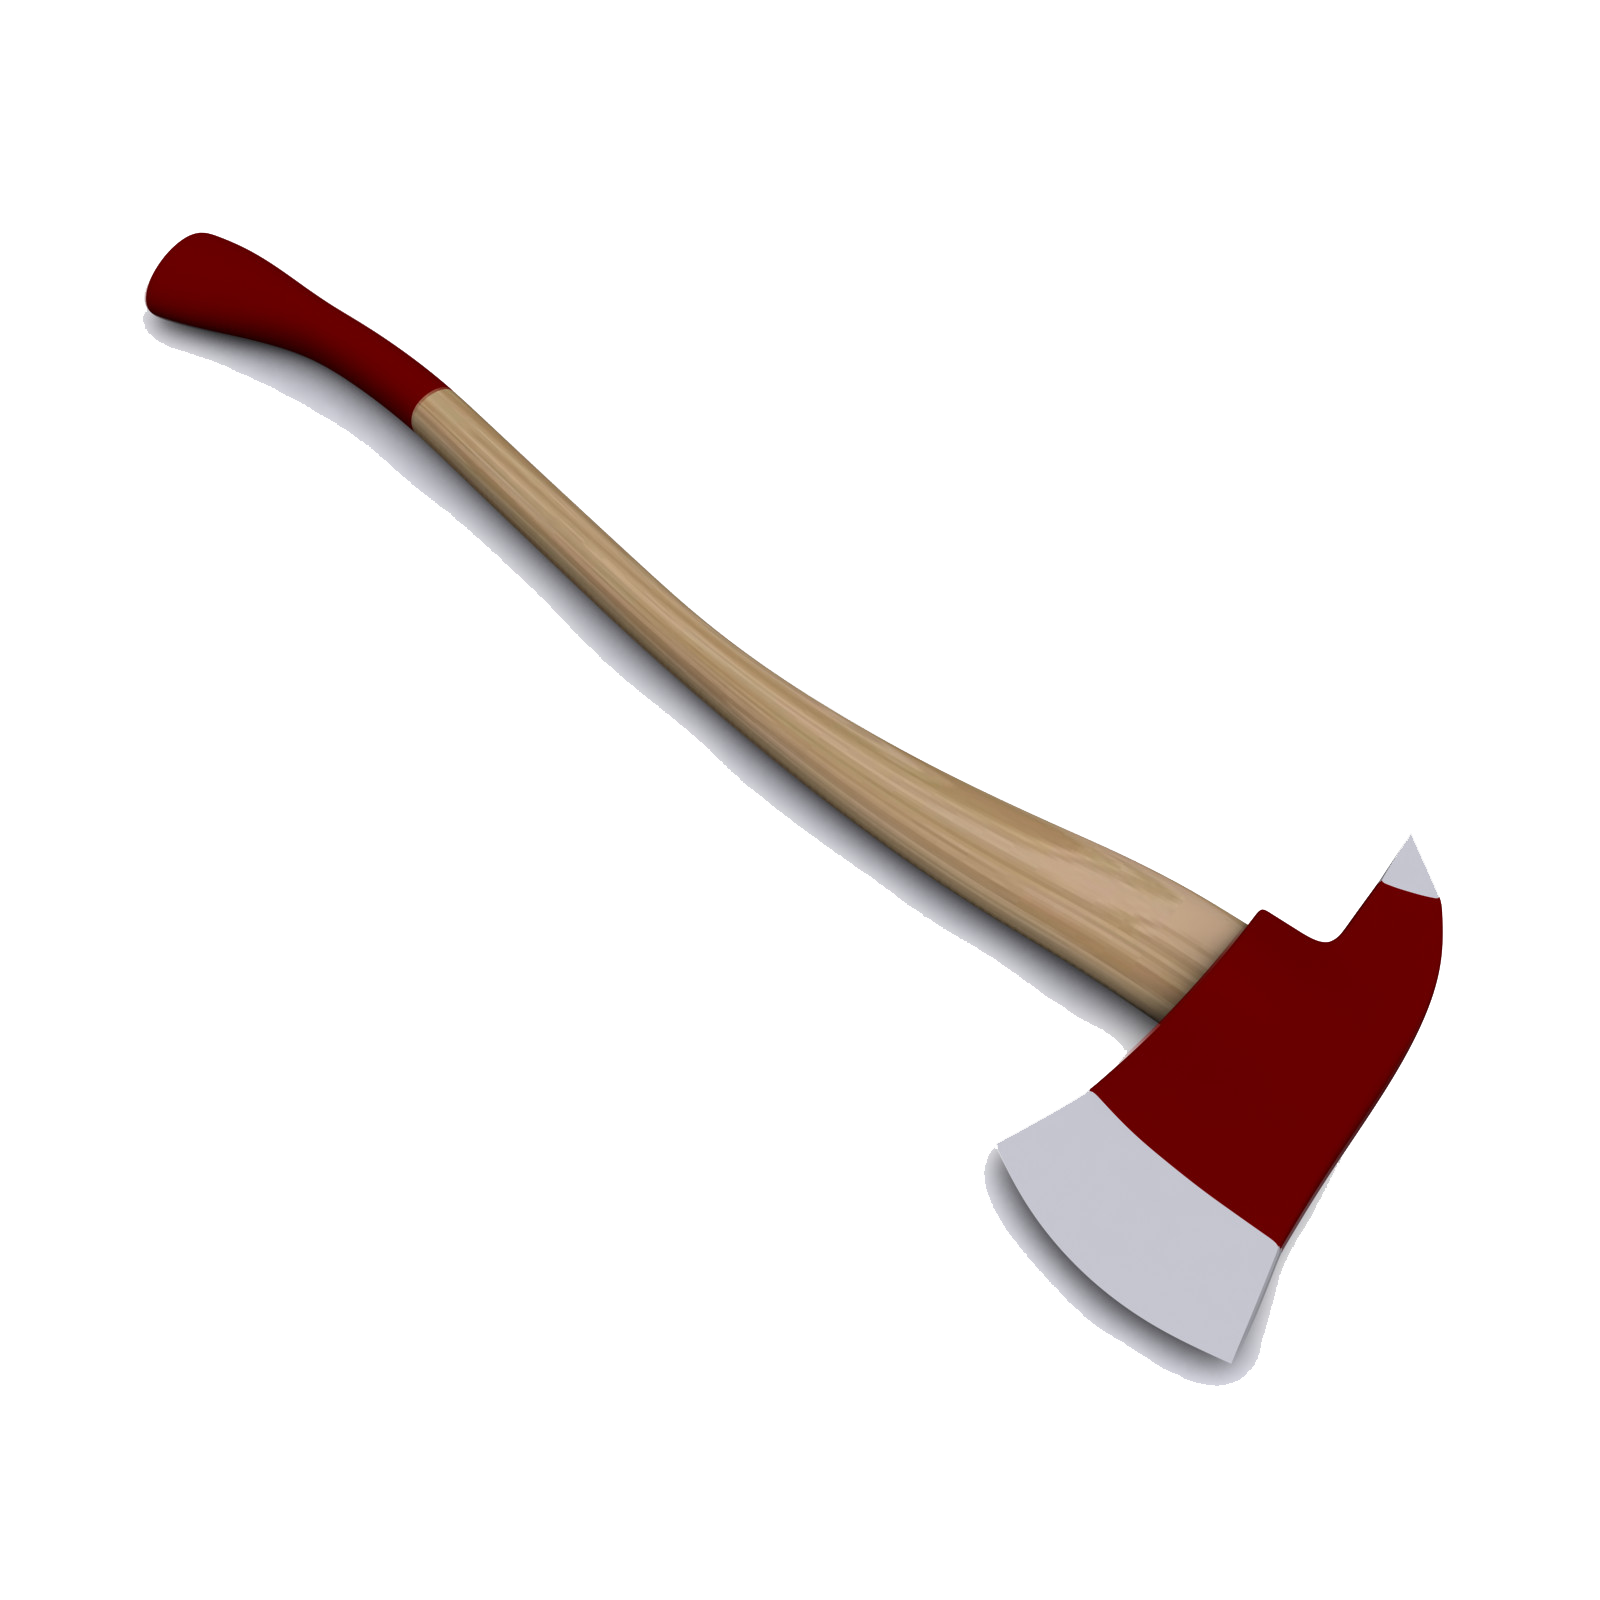 Axe Download Png PNG Image - Axe PNG